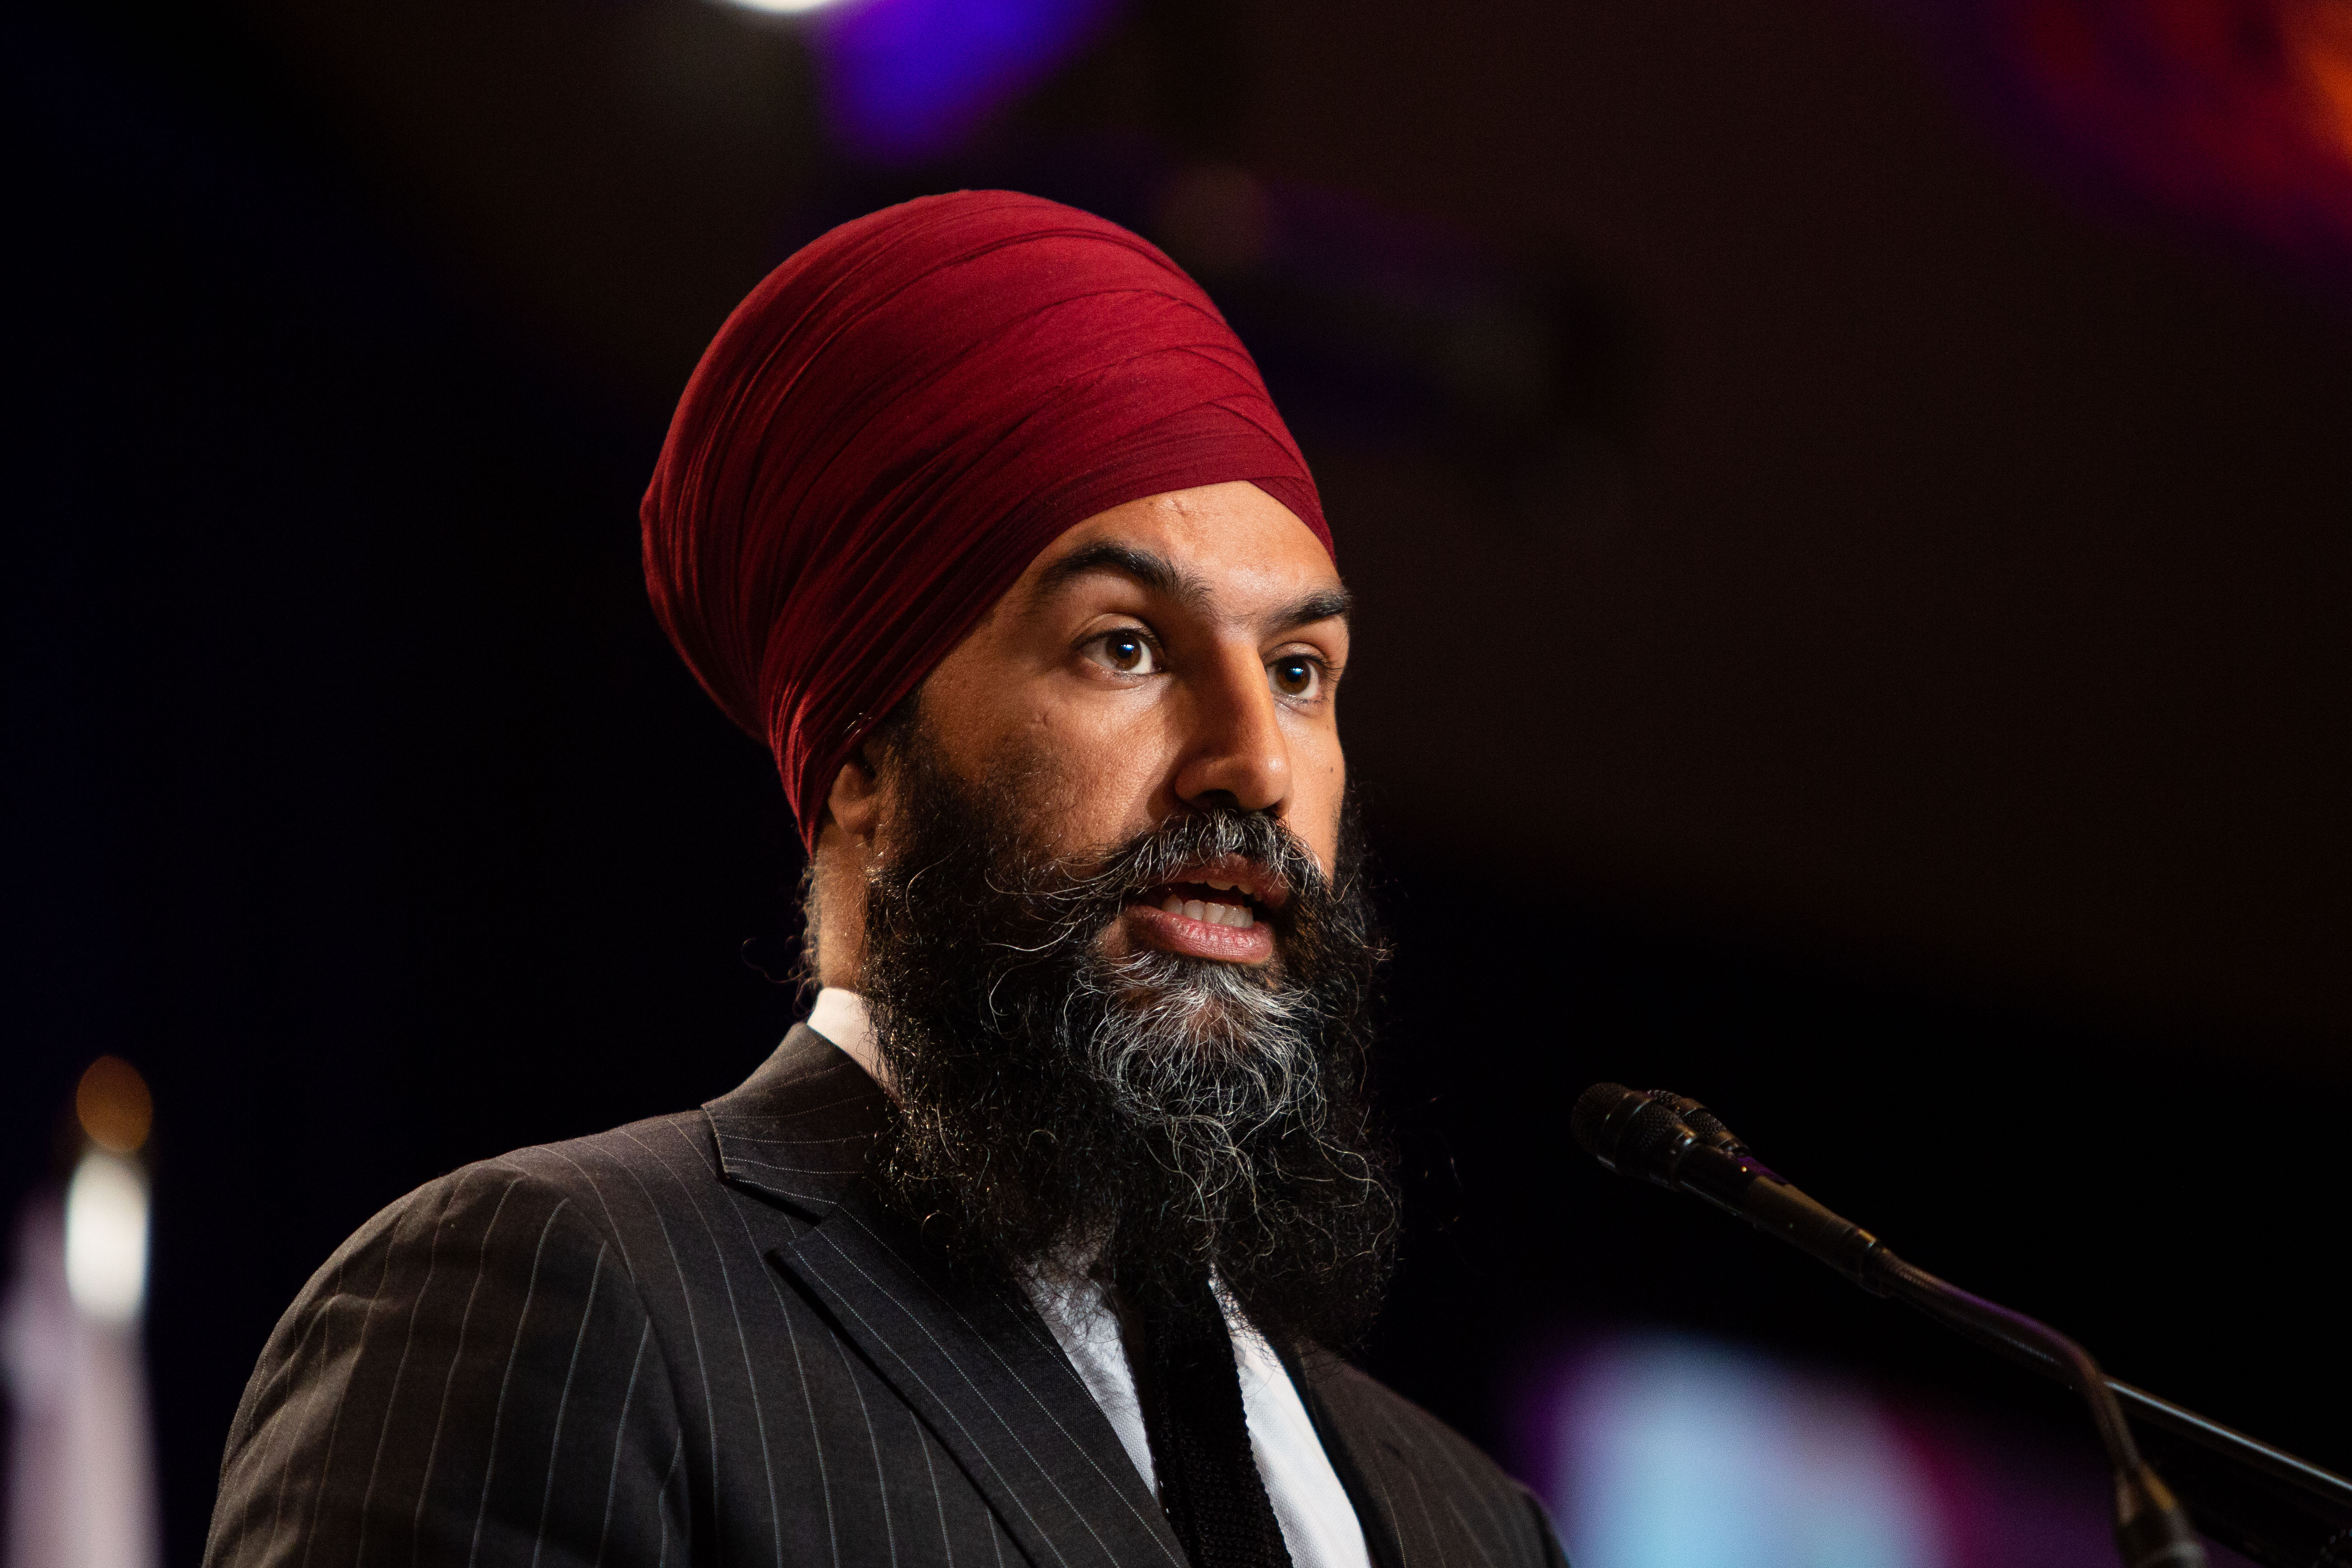 Indigenous people pin hopes on Jagmeet Singh in minority government